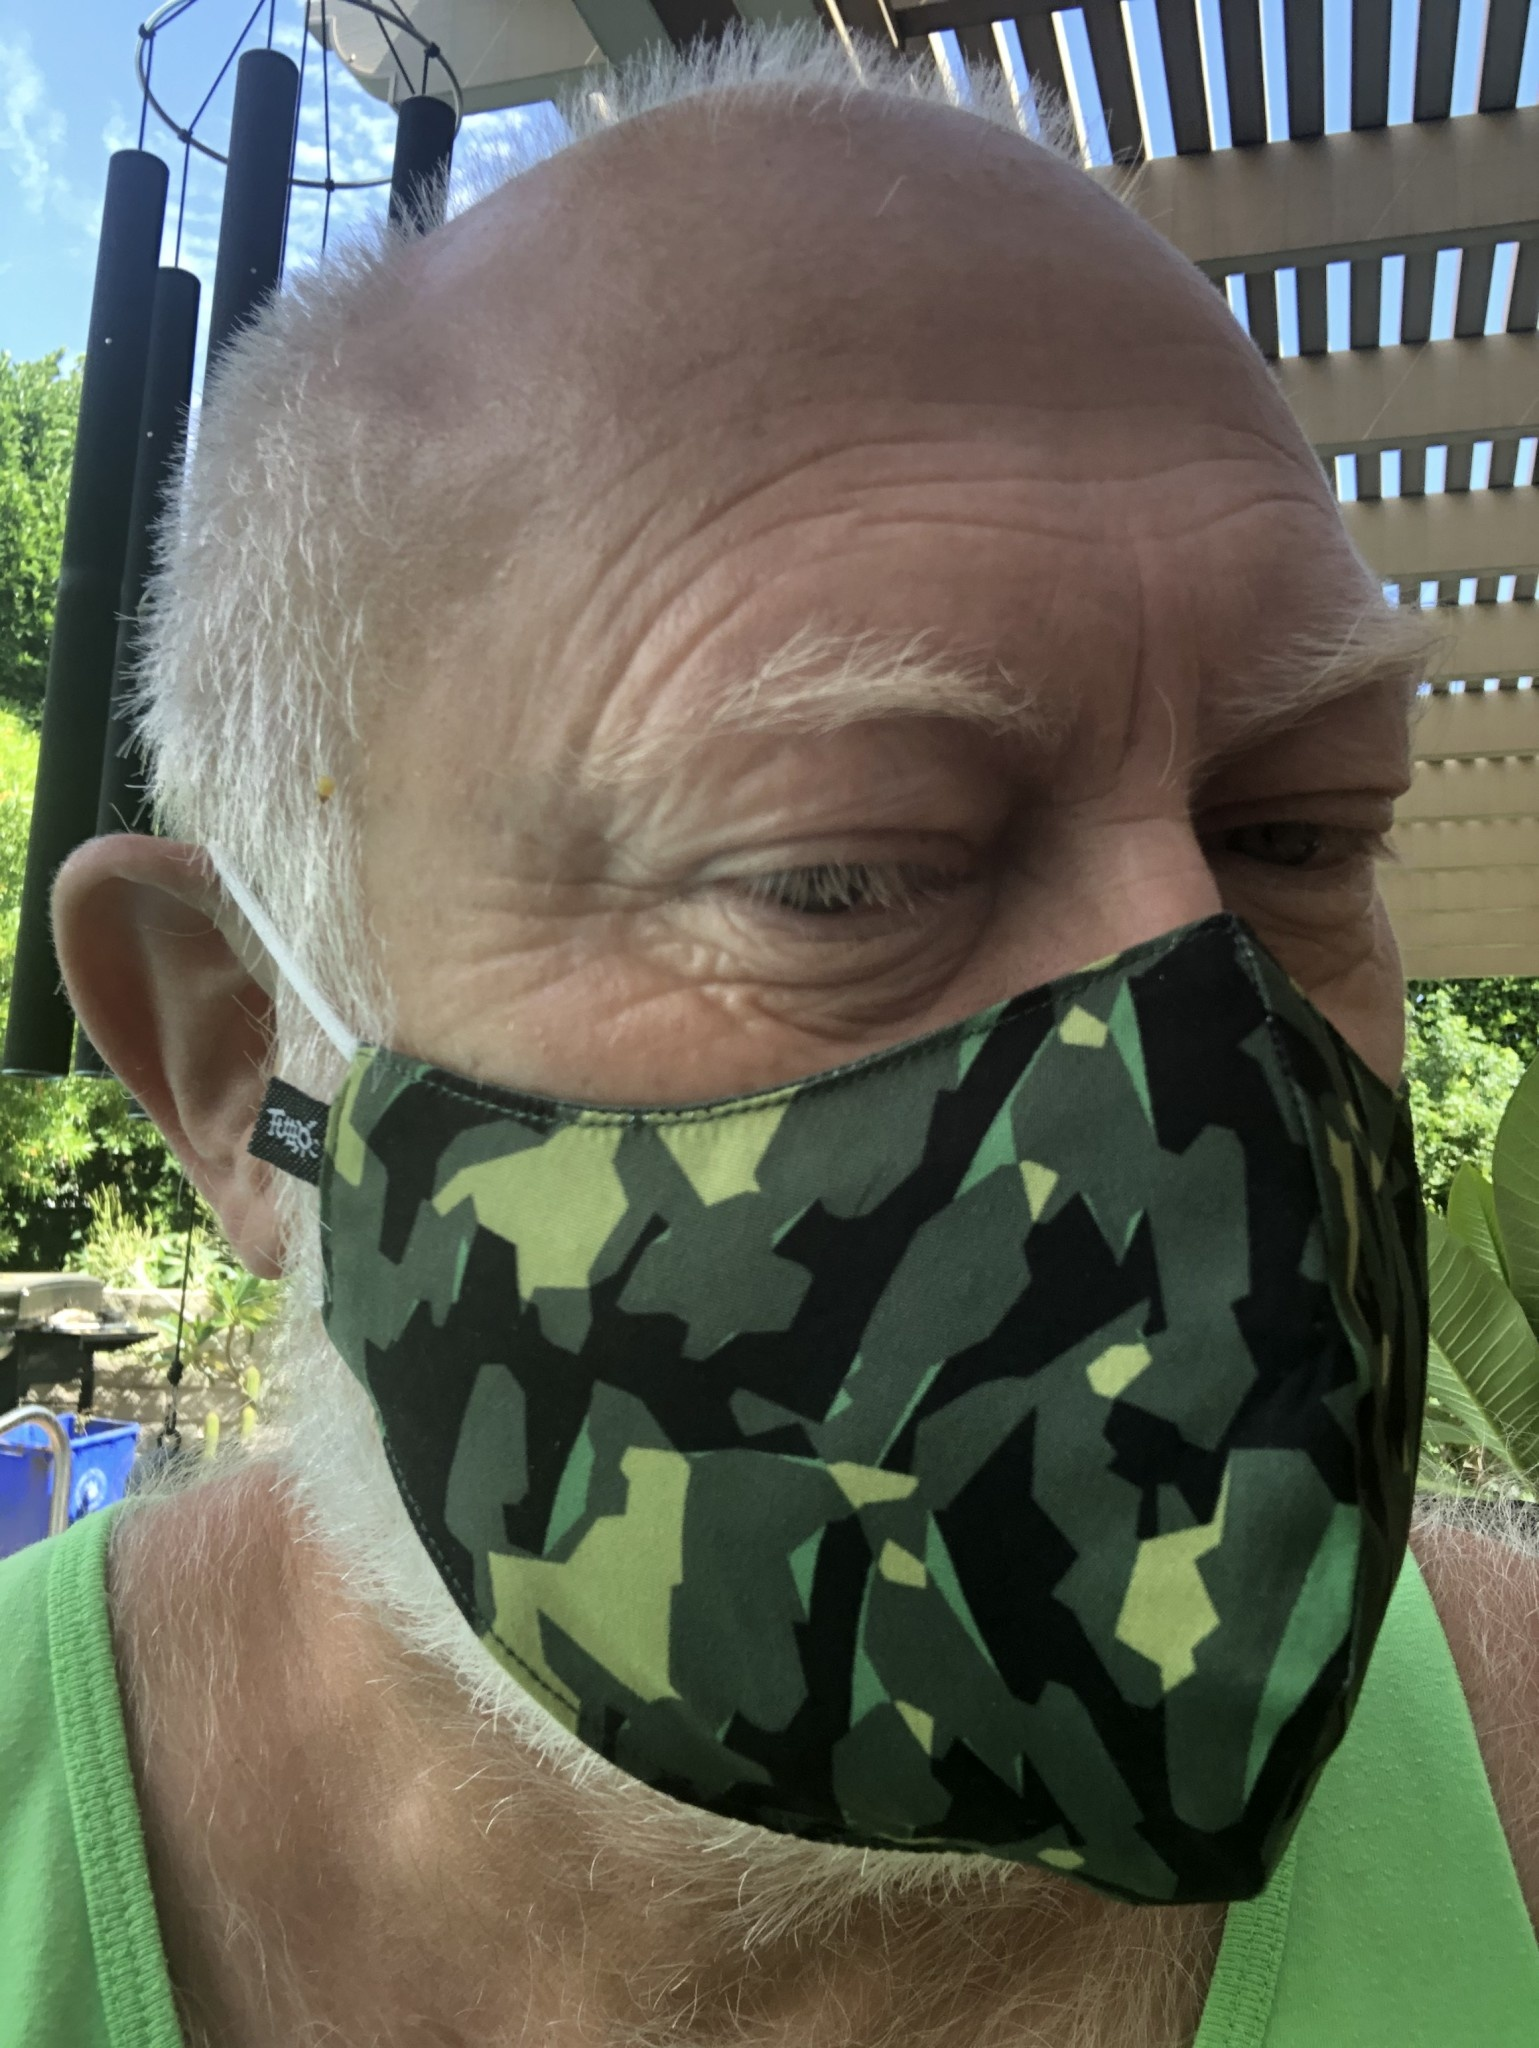 Face Mask, Which one is you? Camo